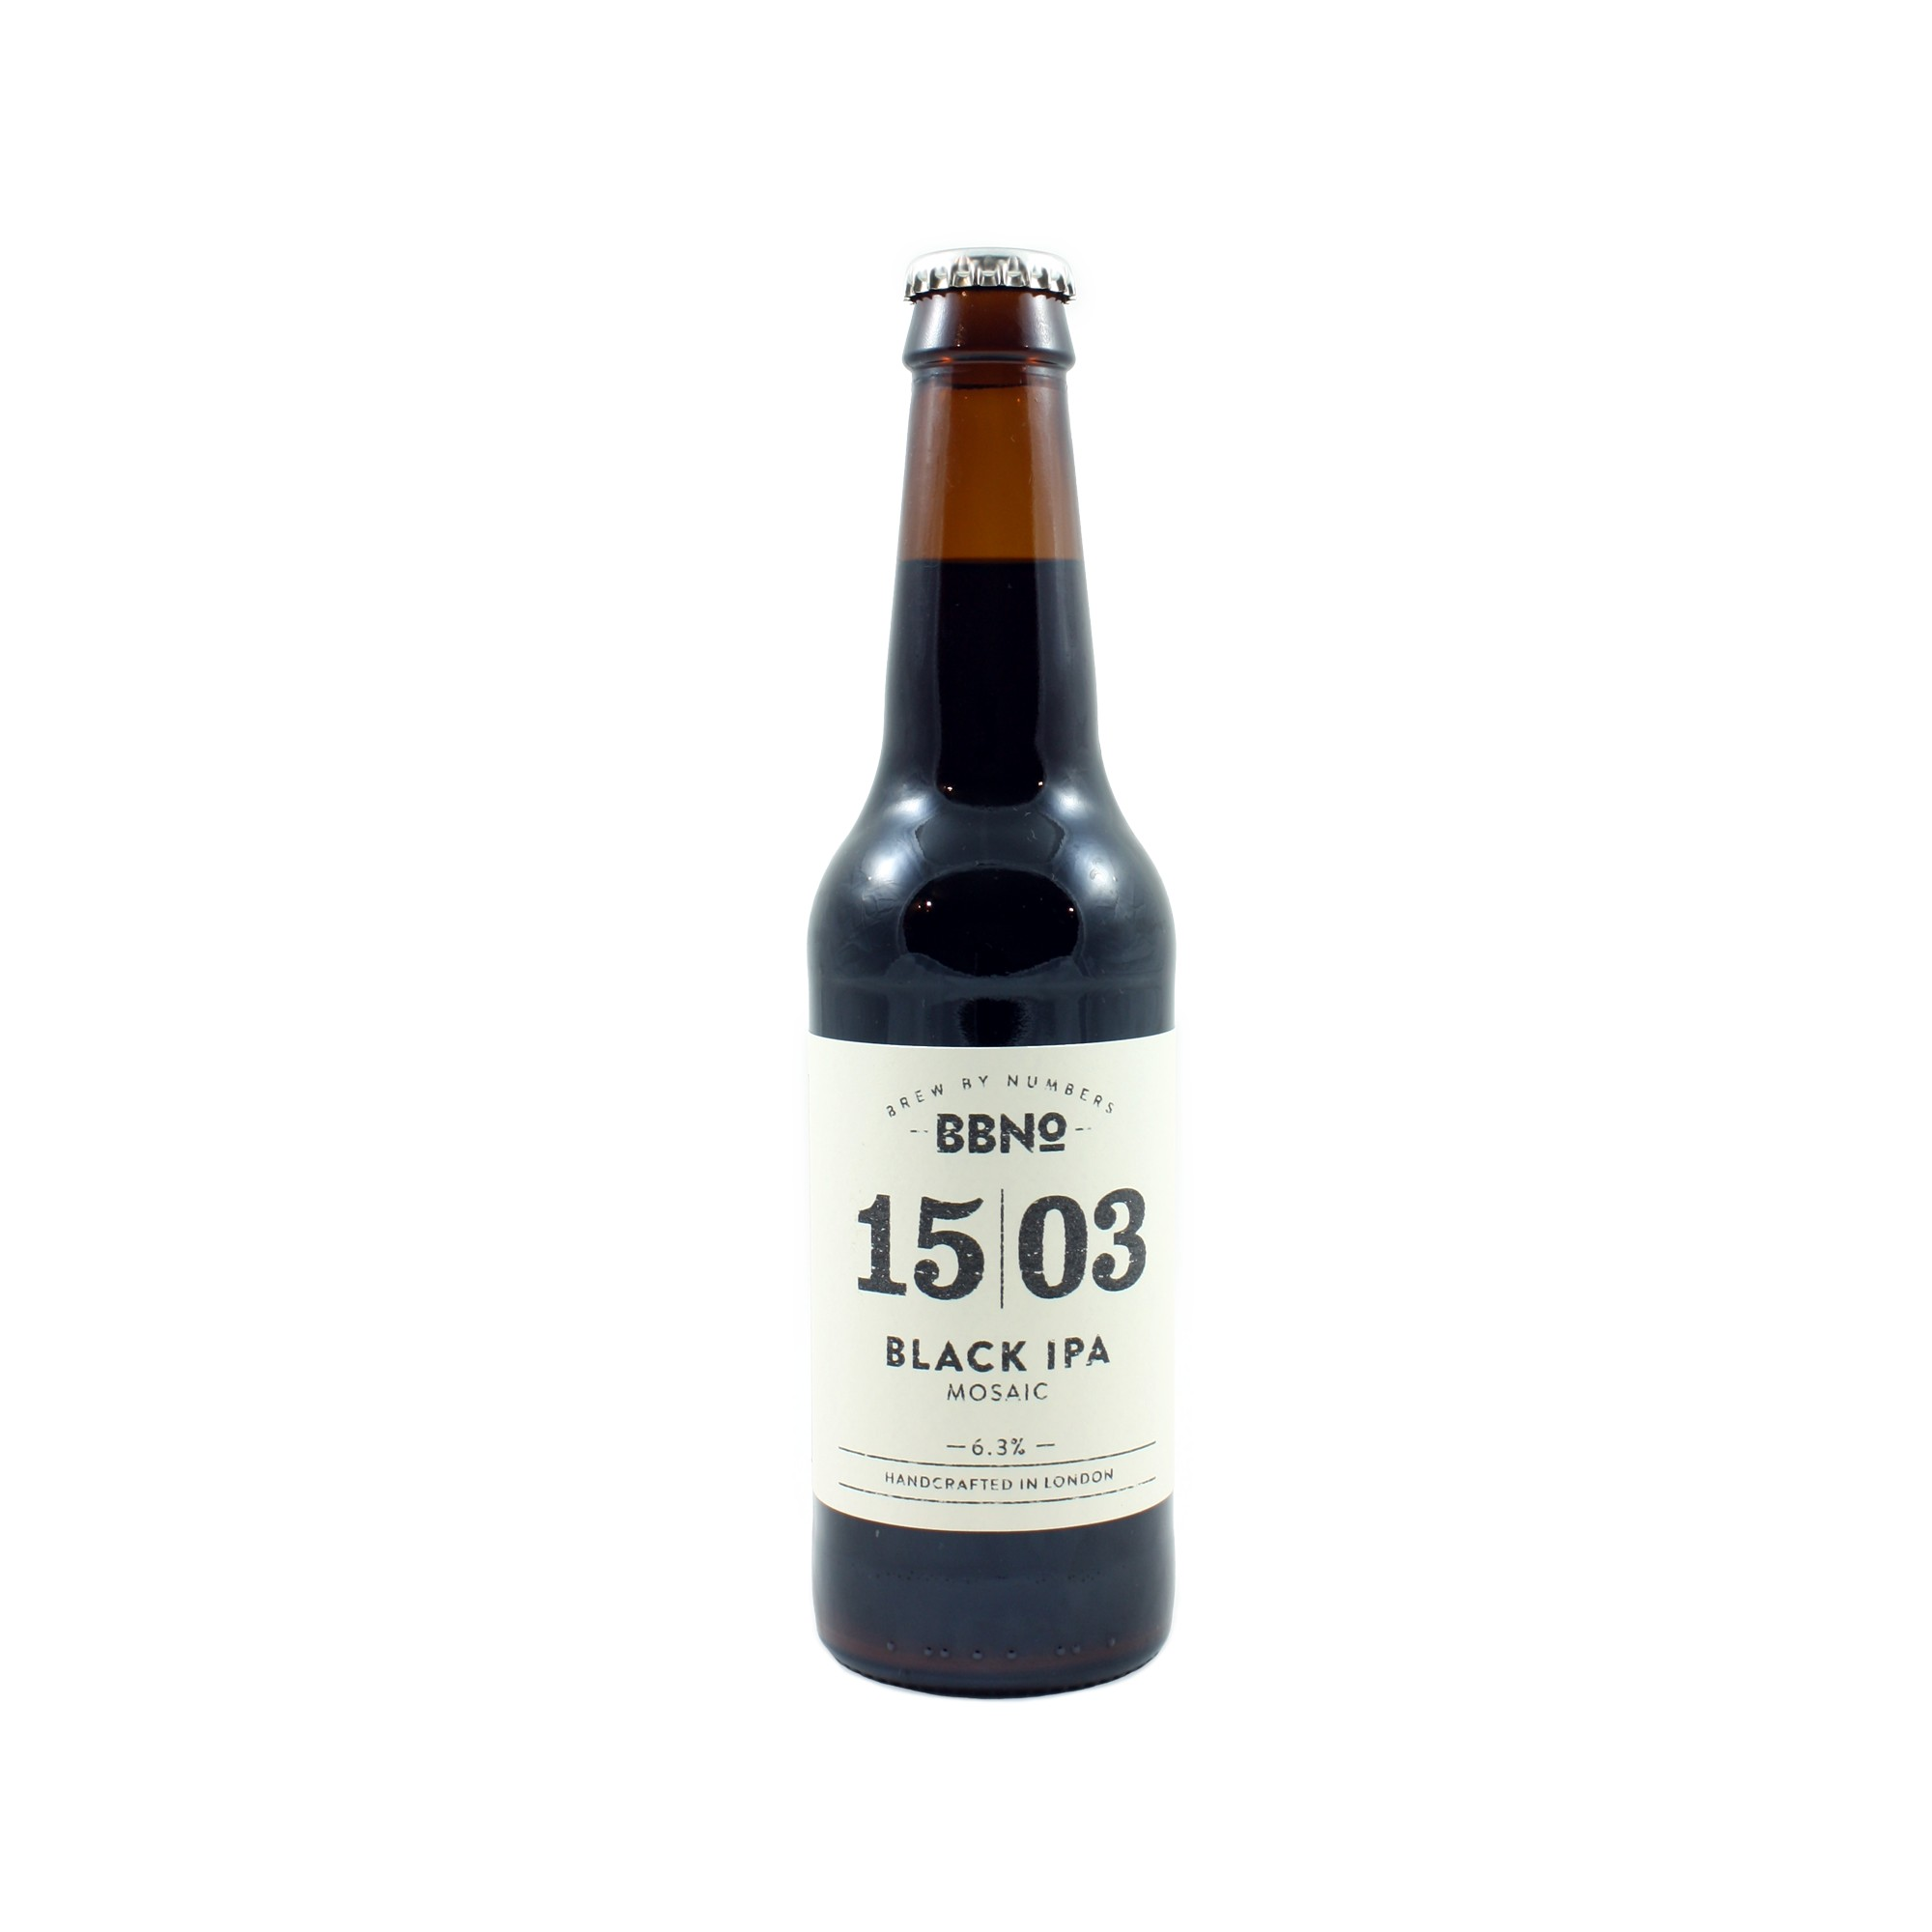 15/03 Black IPA Mosaic 33 cl